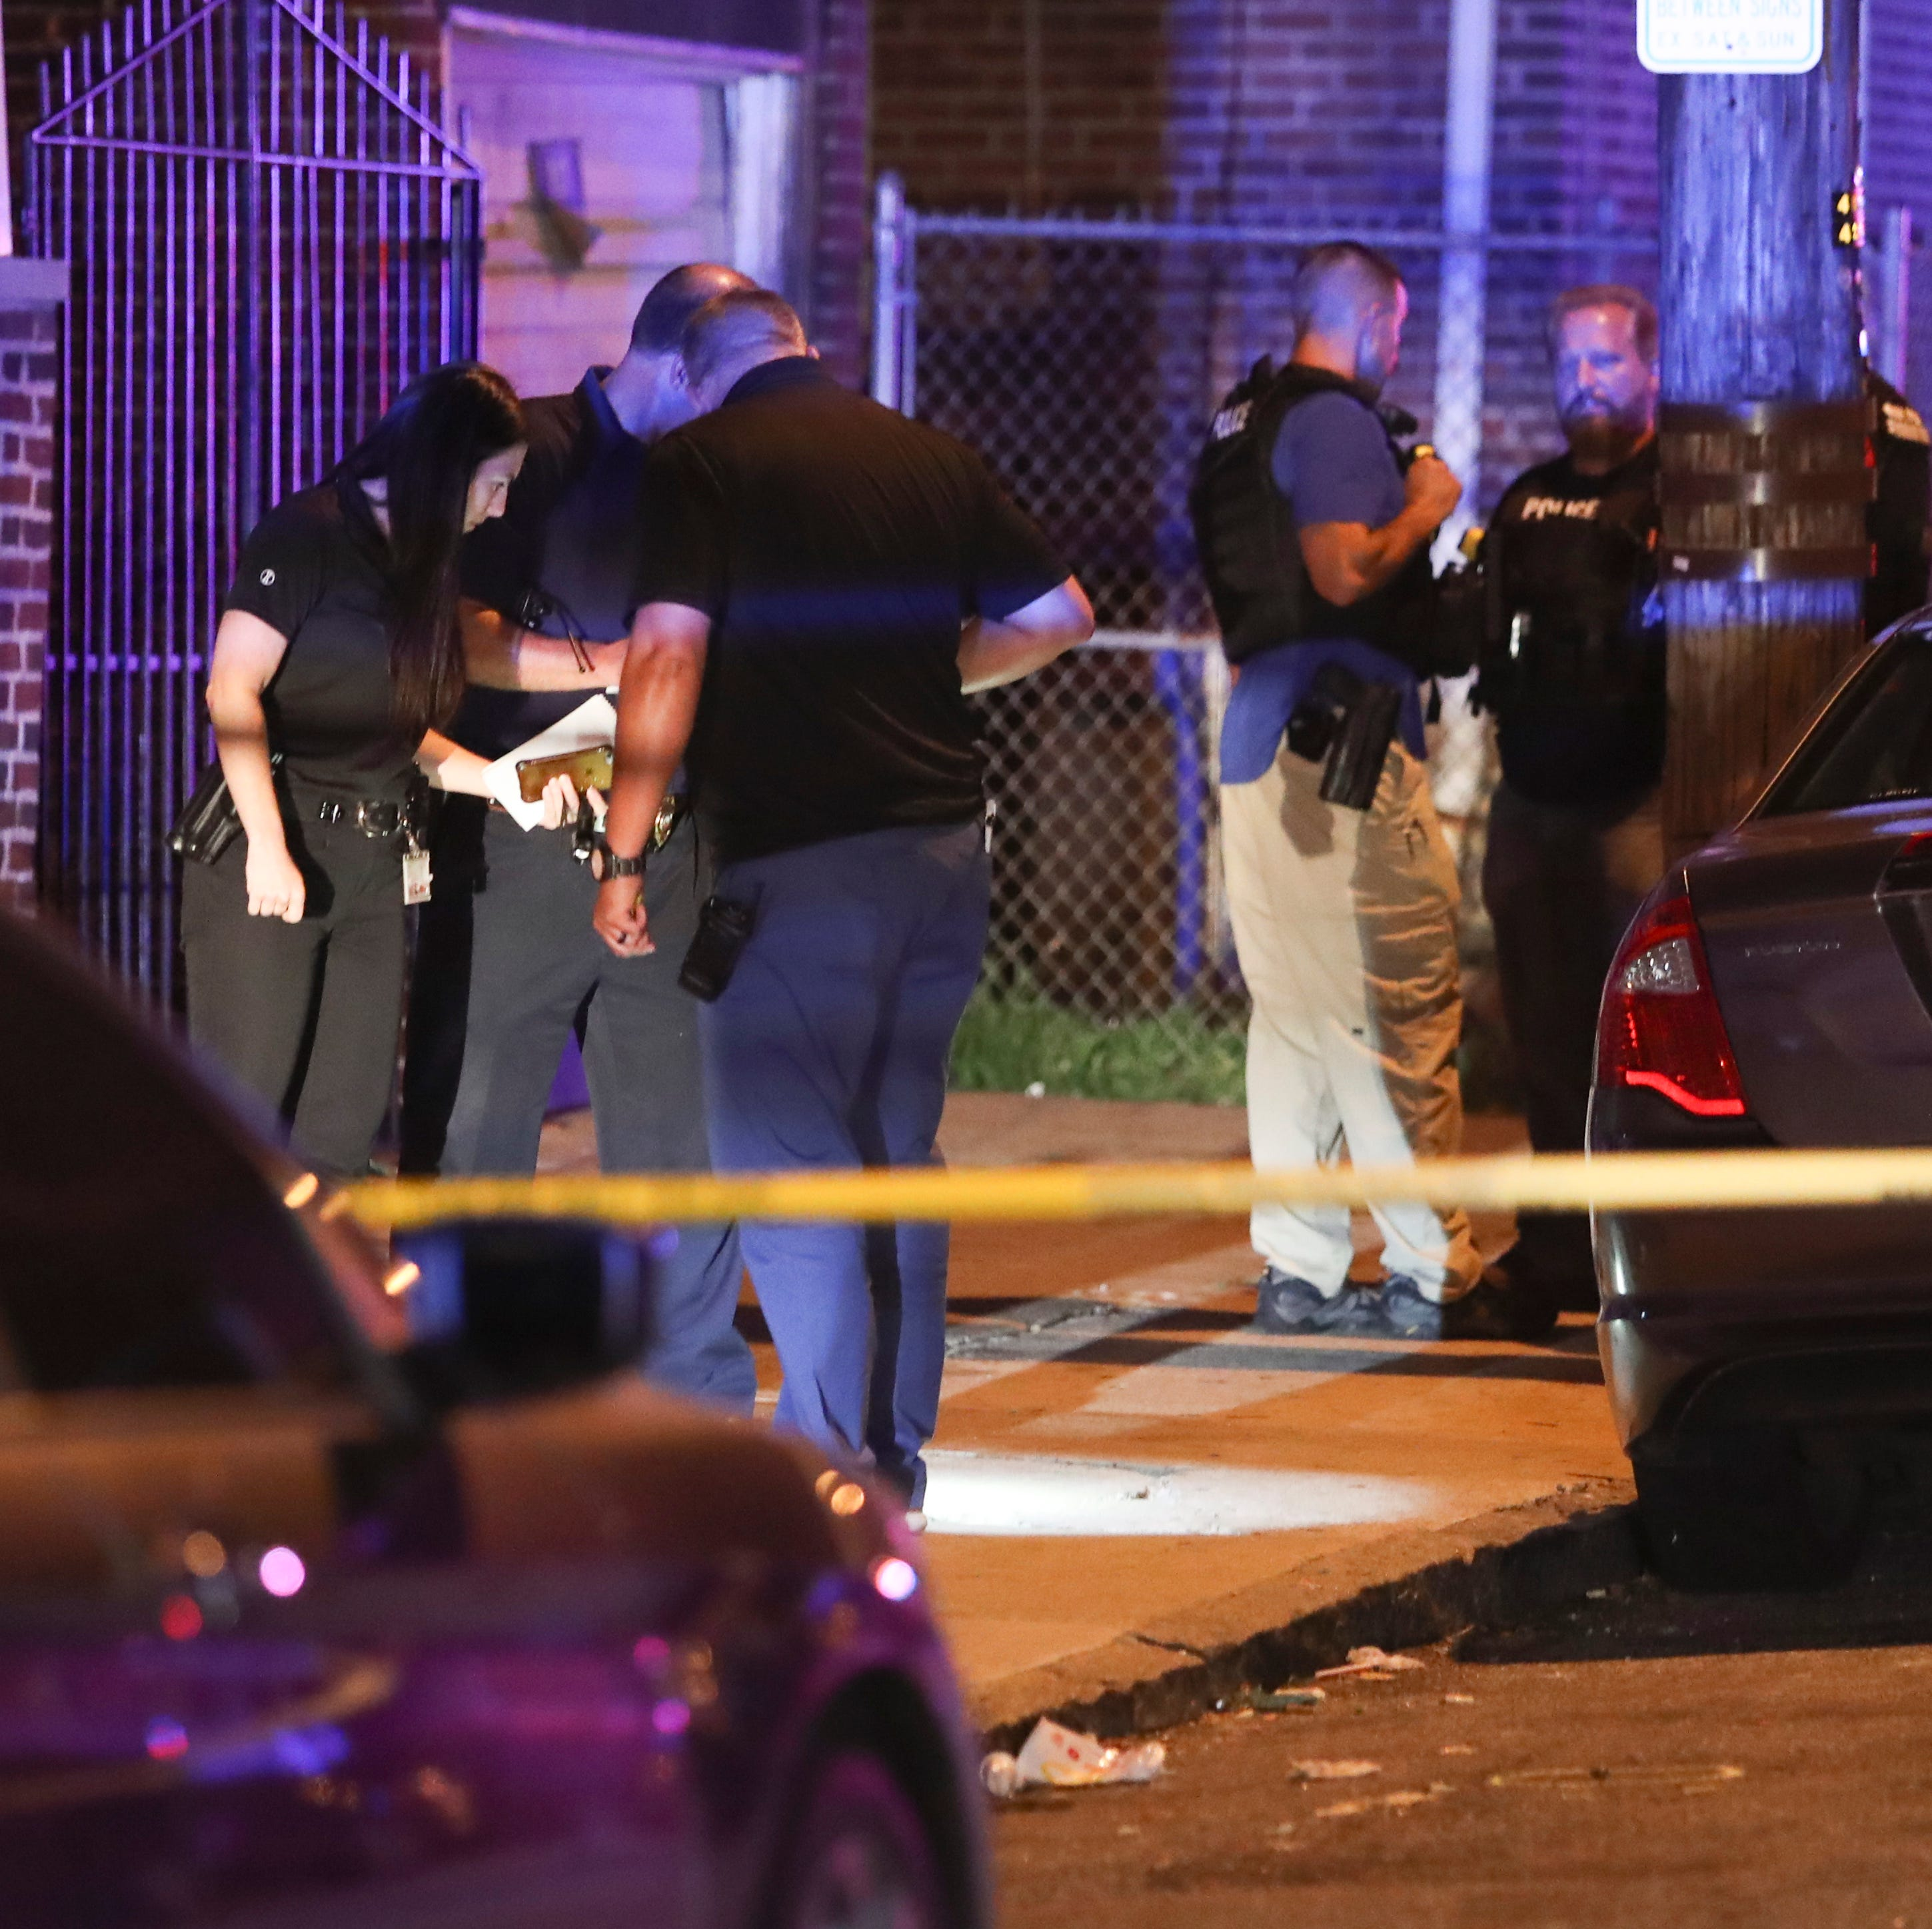 Shooting on W. 5th in Wilmington has 27-year-old in critical condition